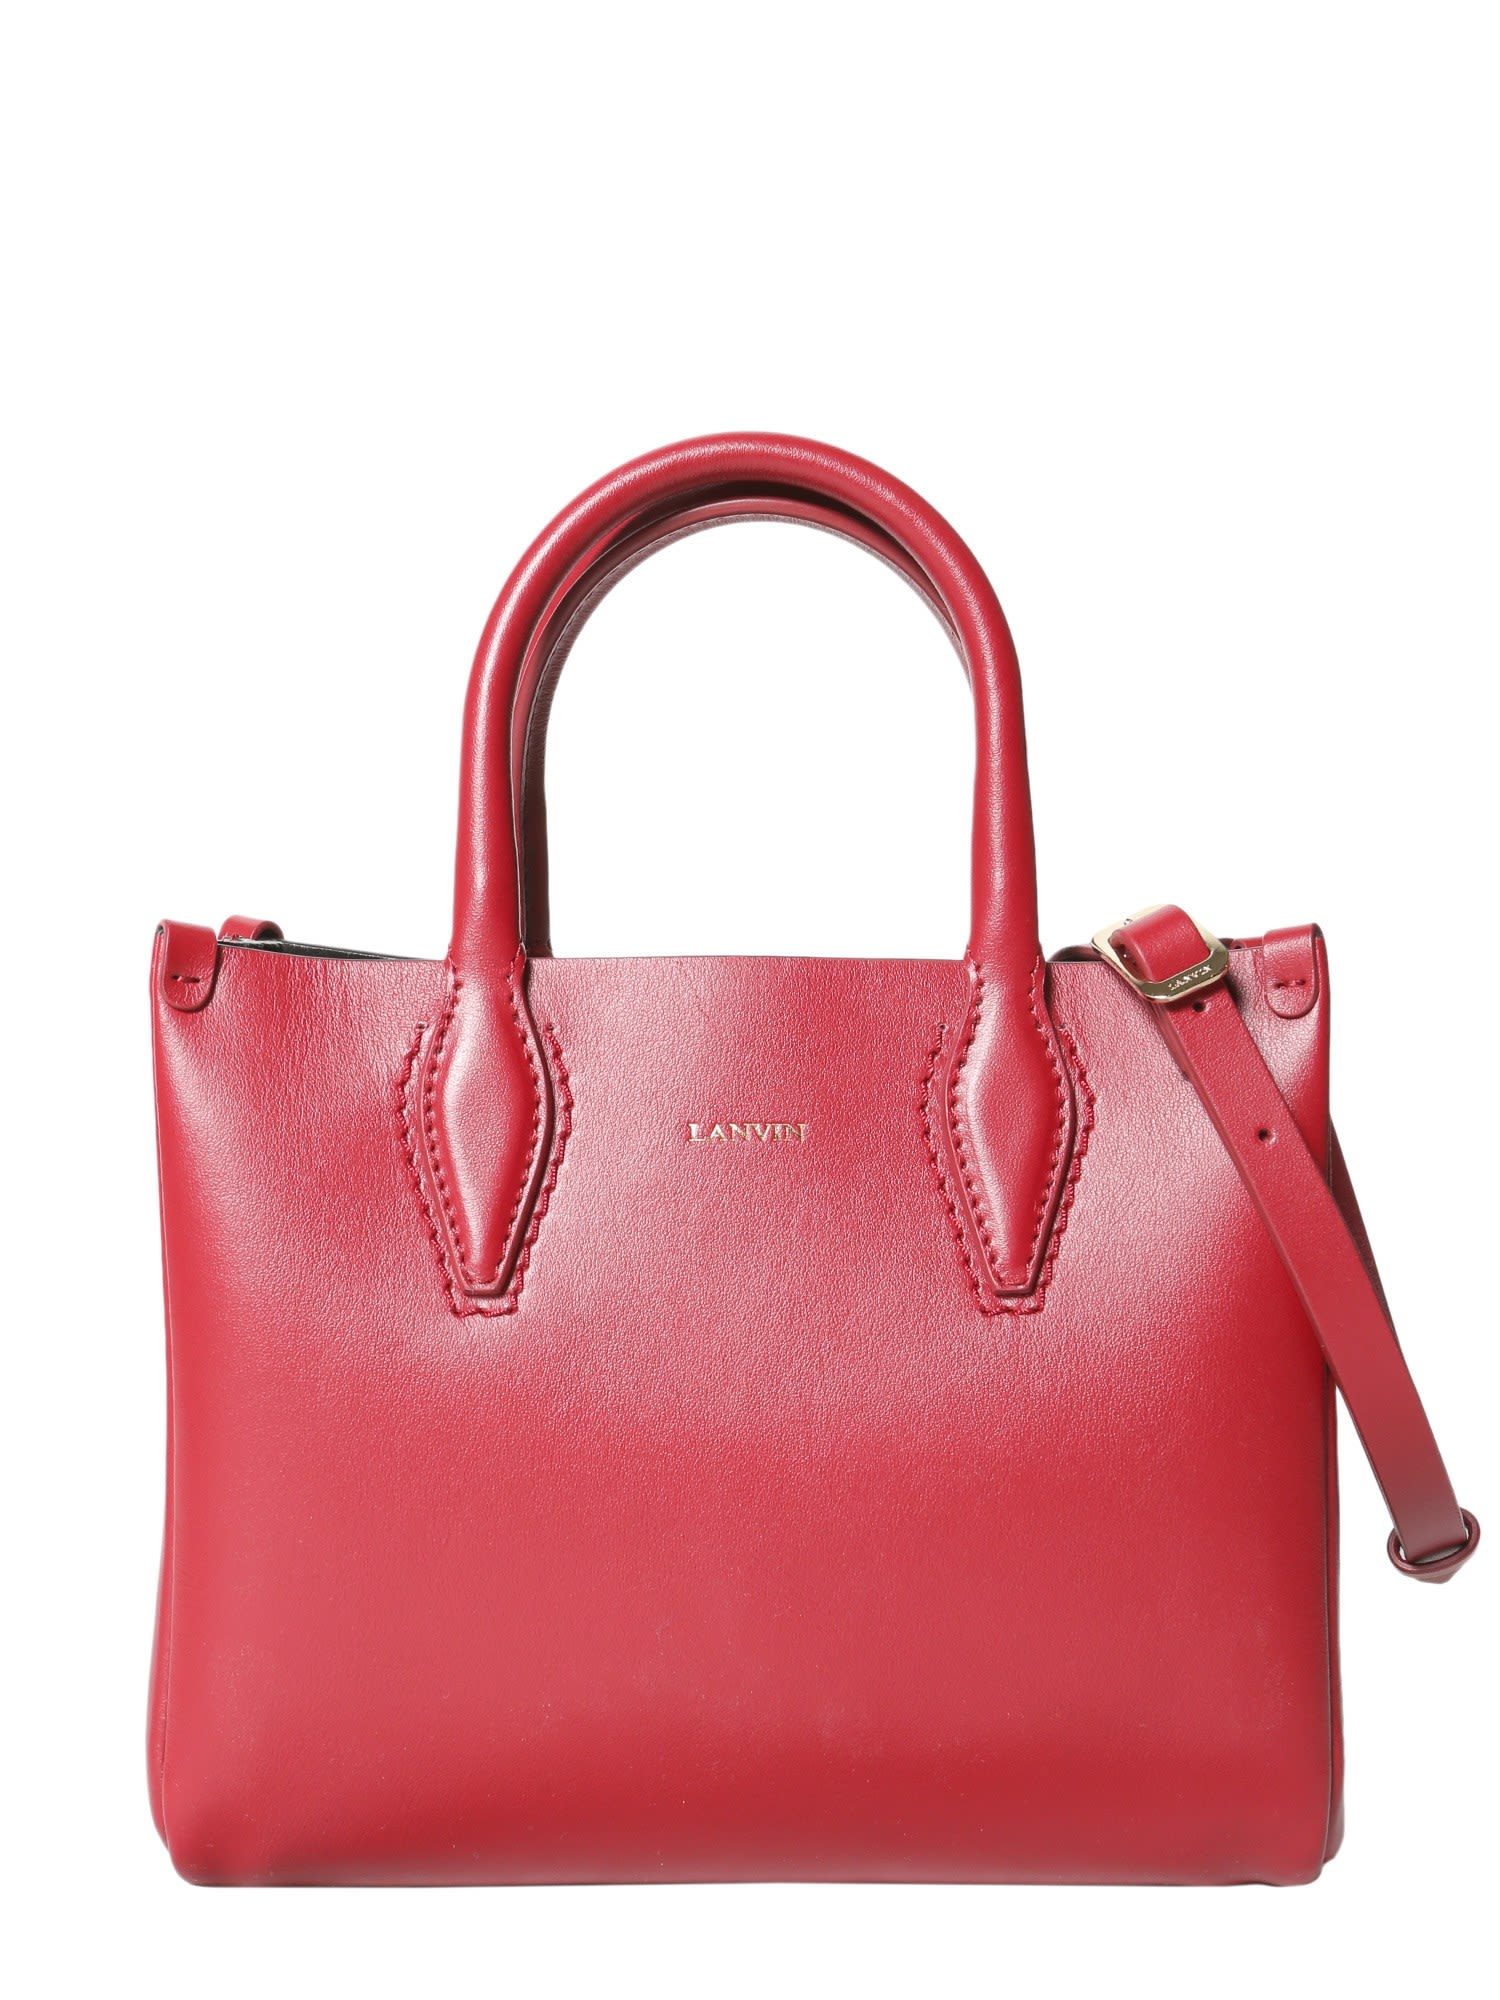 Lanvin Nano Shopping Bag